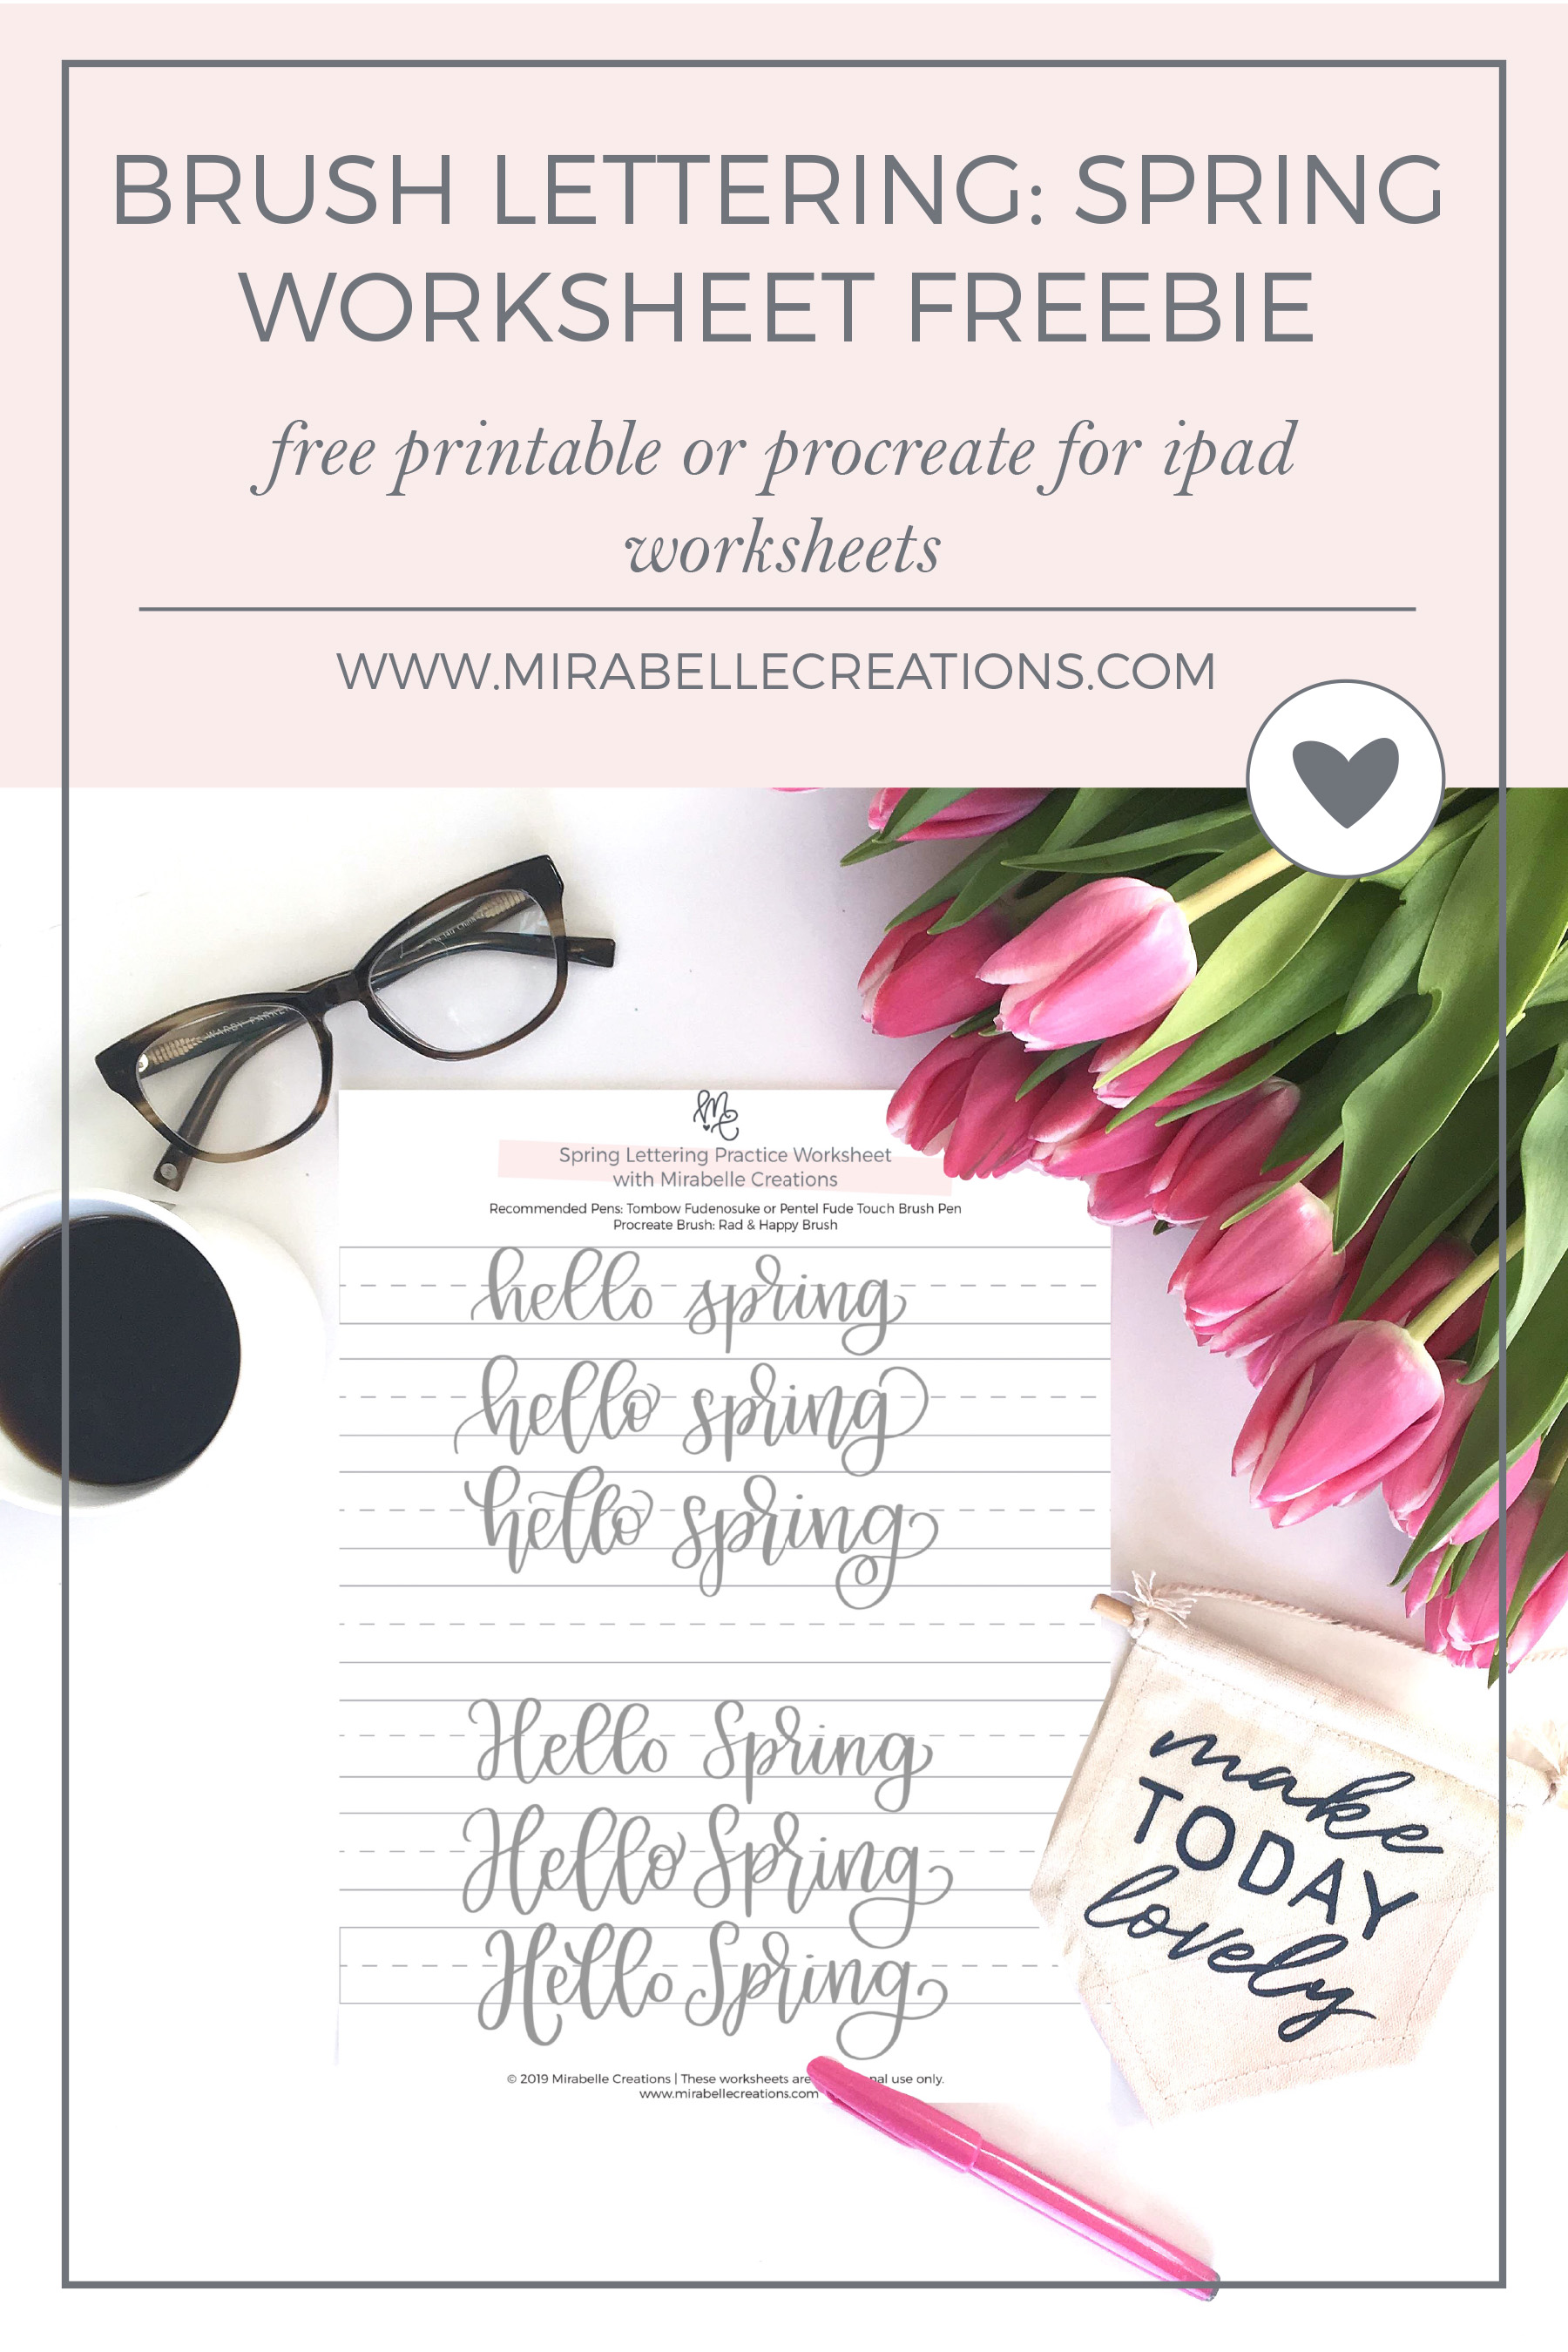 Hello Spring Brush Lettering Worksheet Freebie by Mirabelle Creations